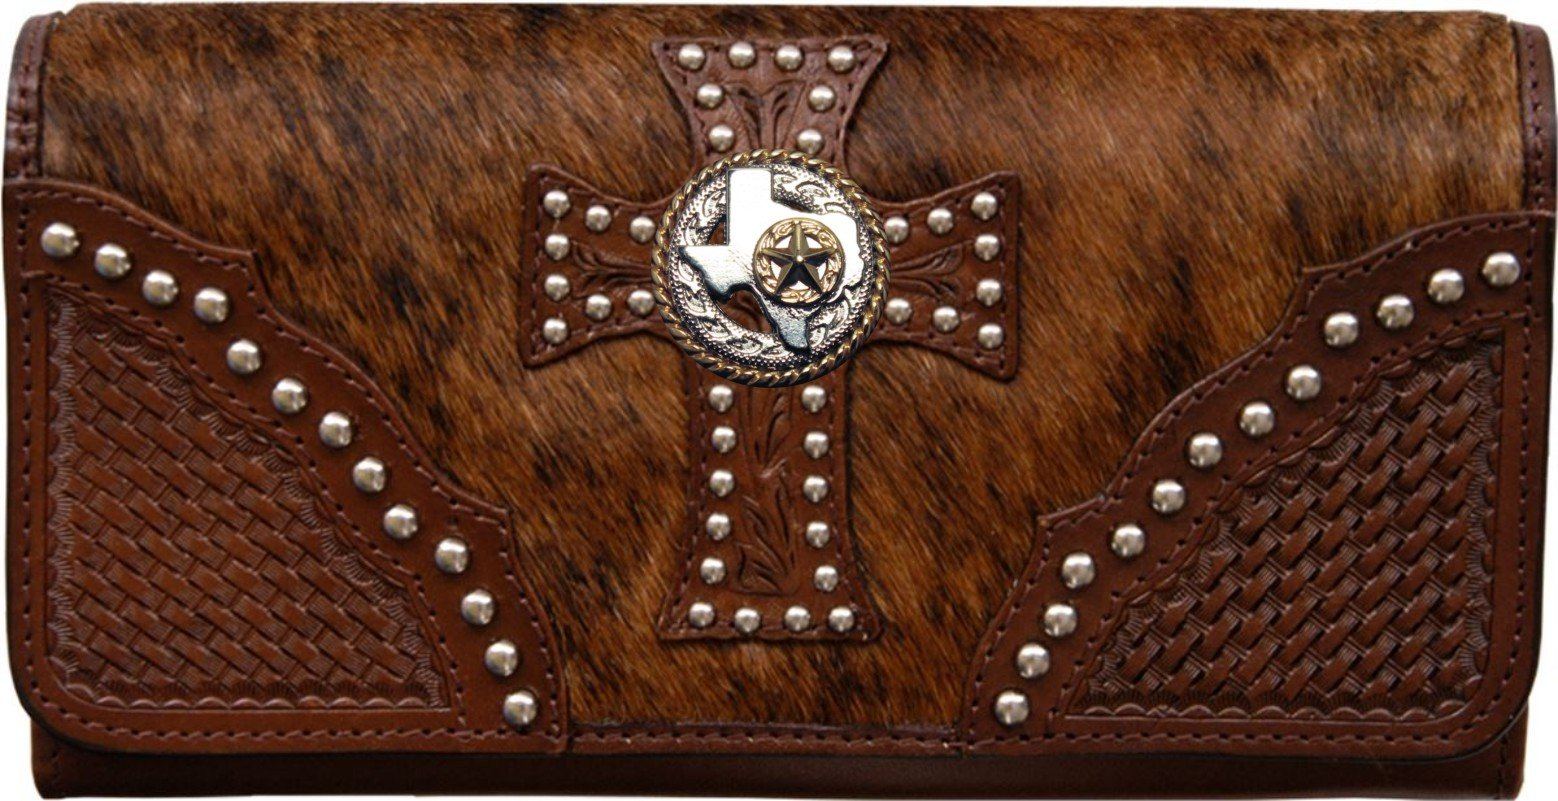 Custom Texas Rope and Star Natural Hair Christian Clutch Wallet with removable checkbook